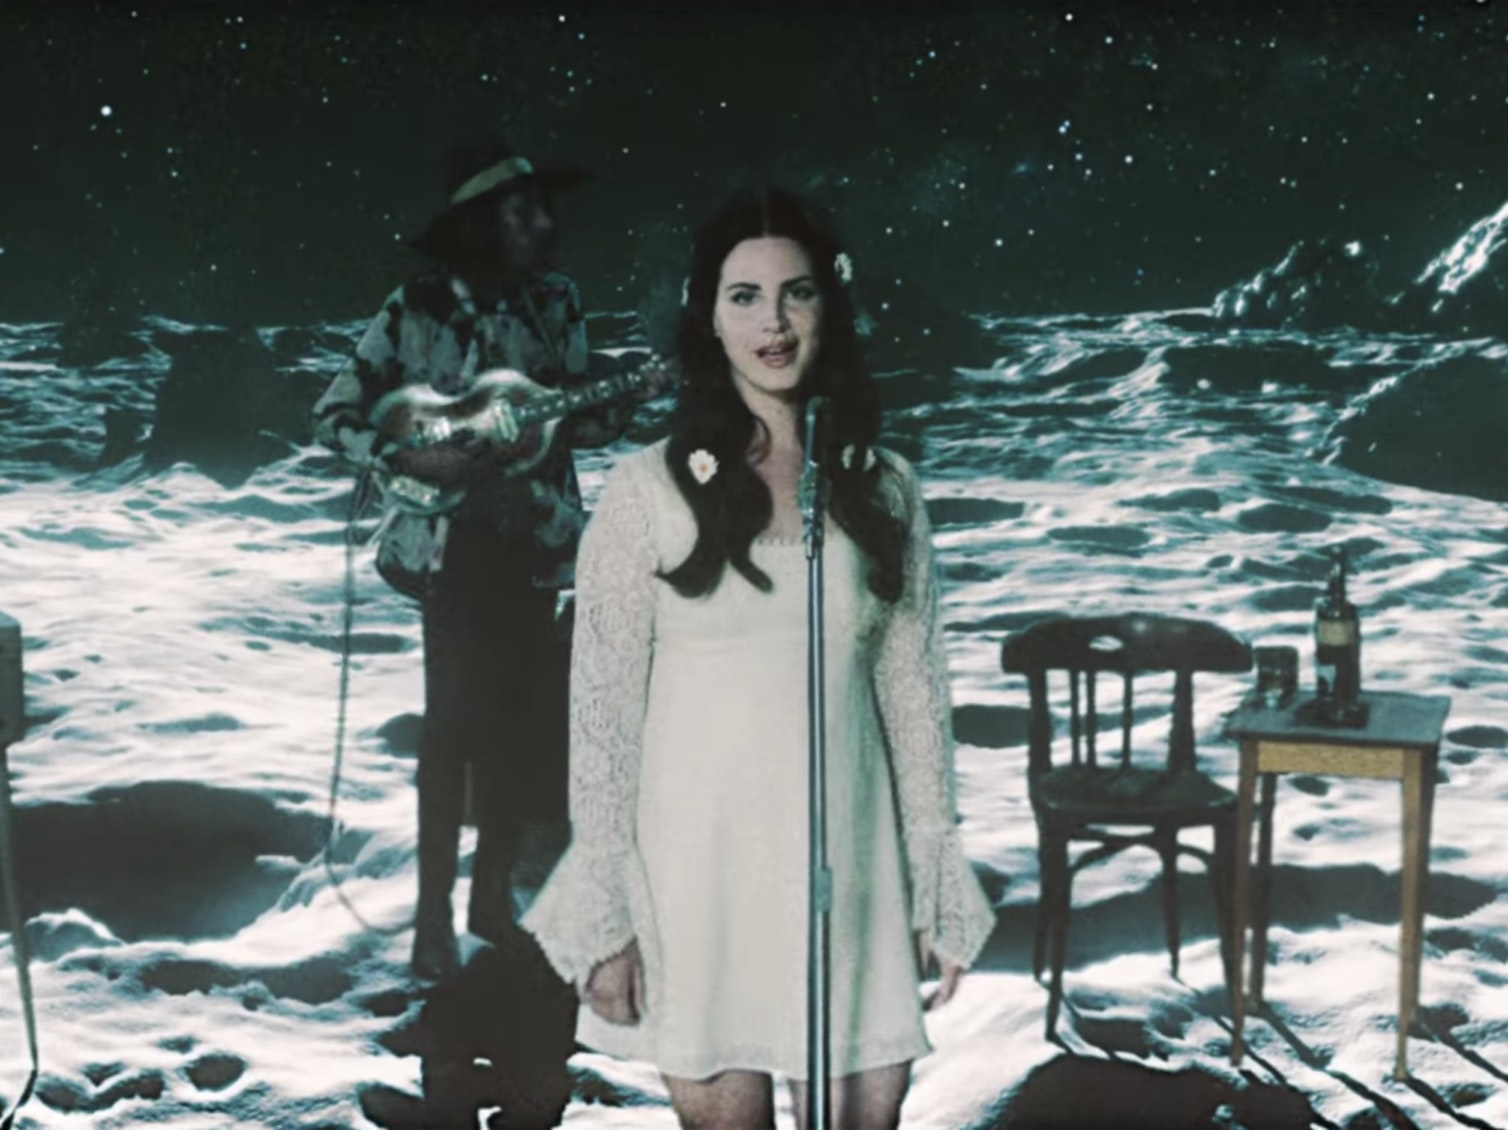 'Love' Video Proves Lana Del Rey Needs an Astronomy Class